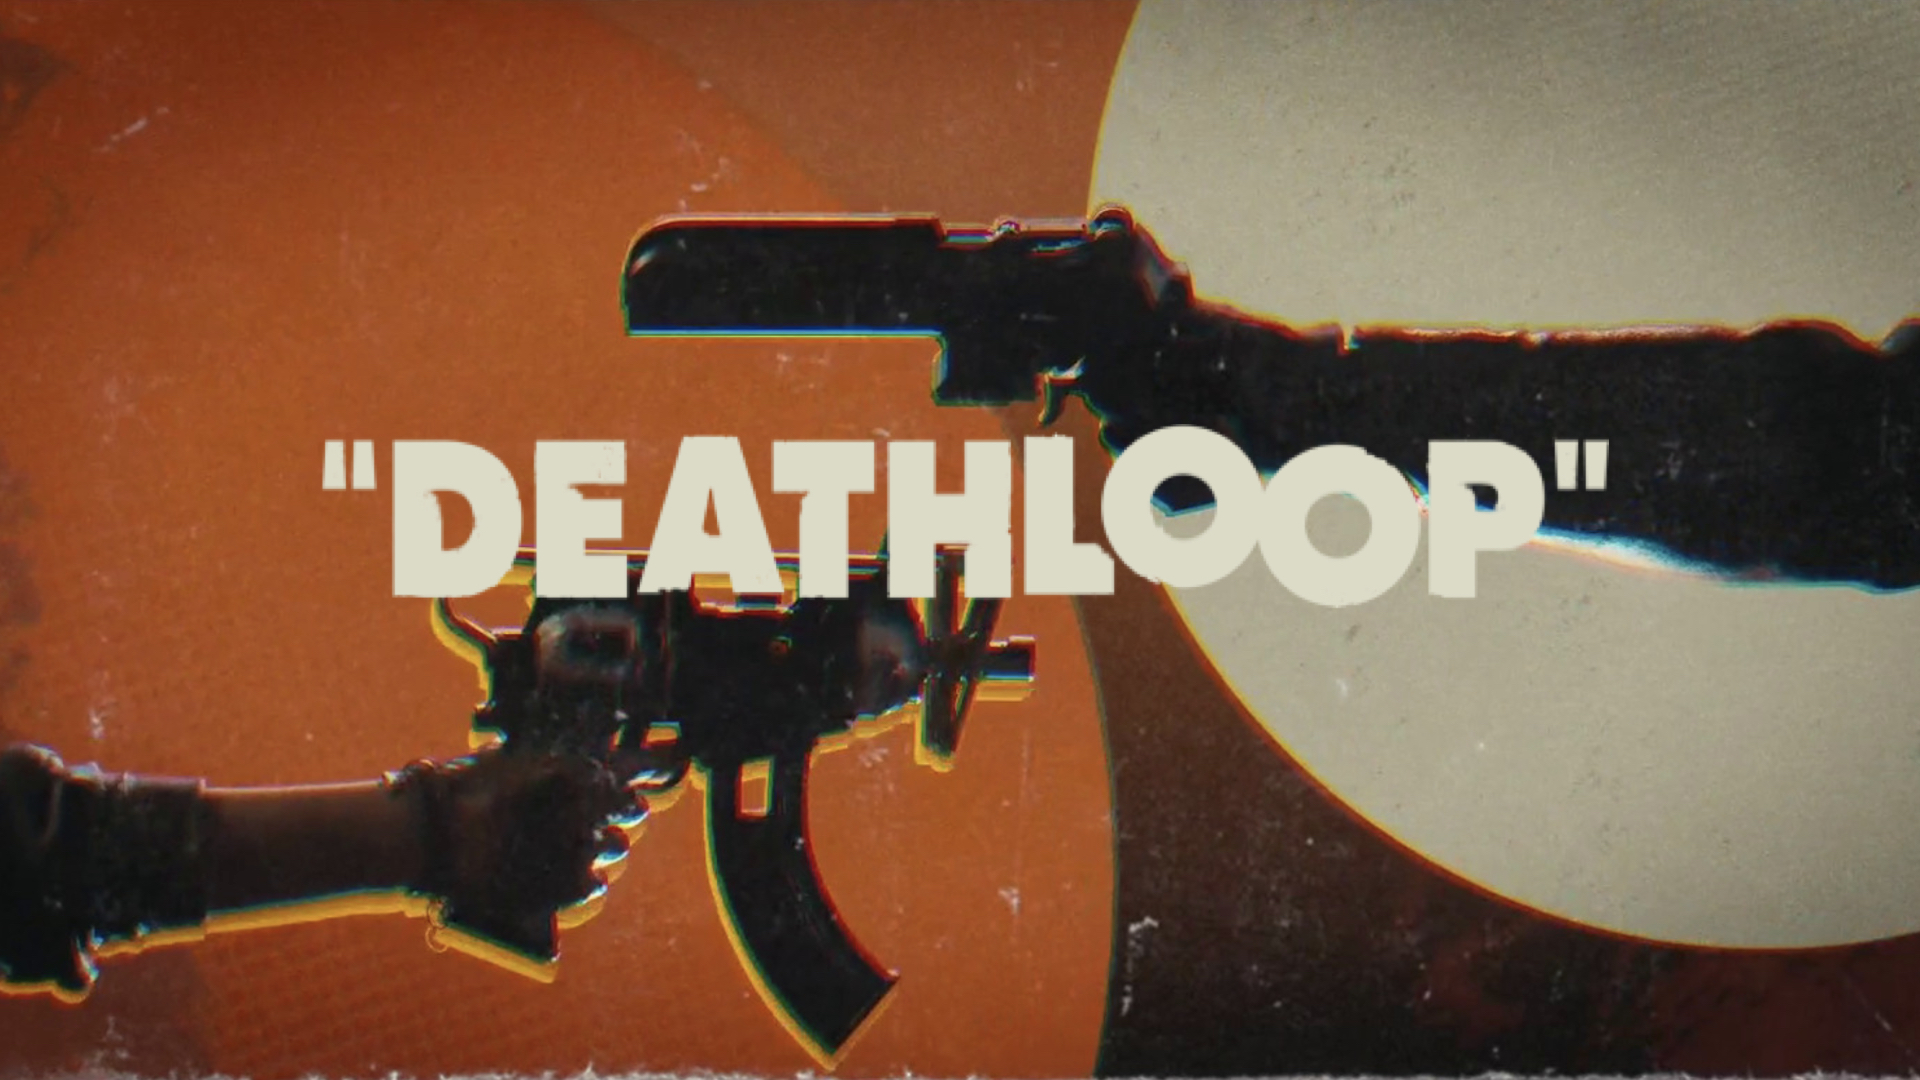 deathloop game wallpaper 72274